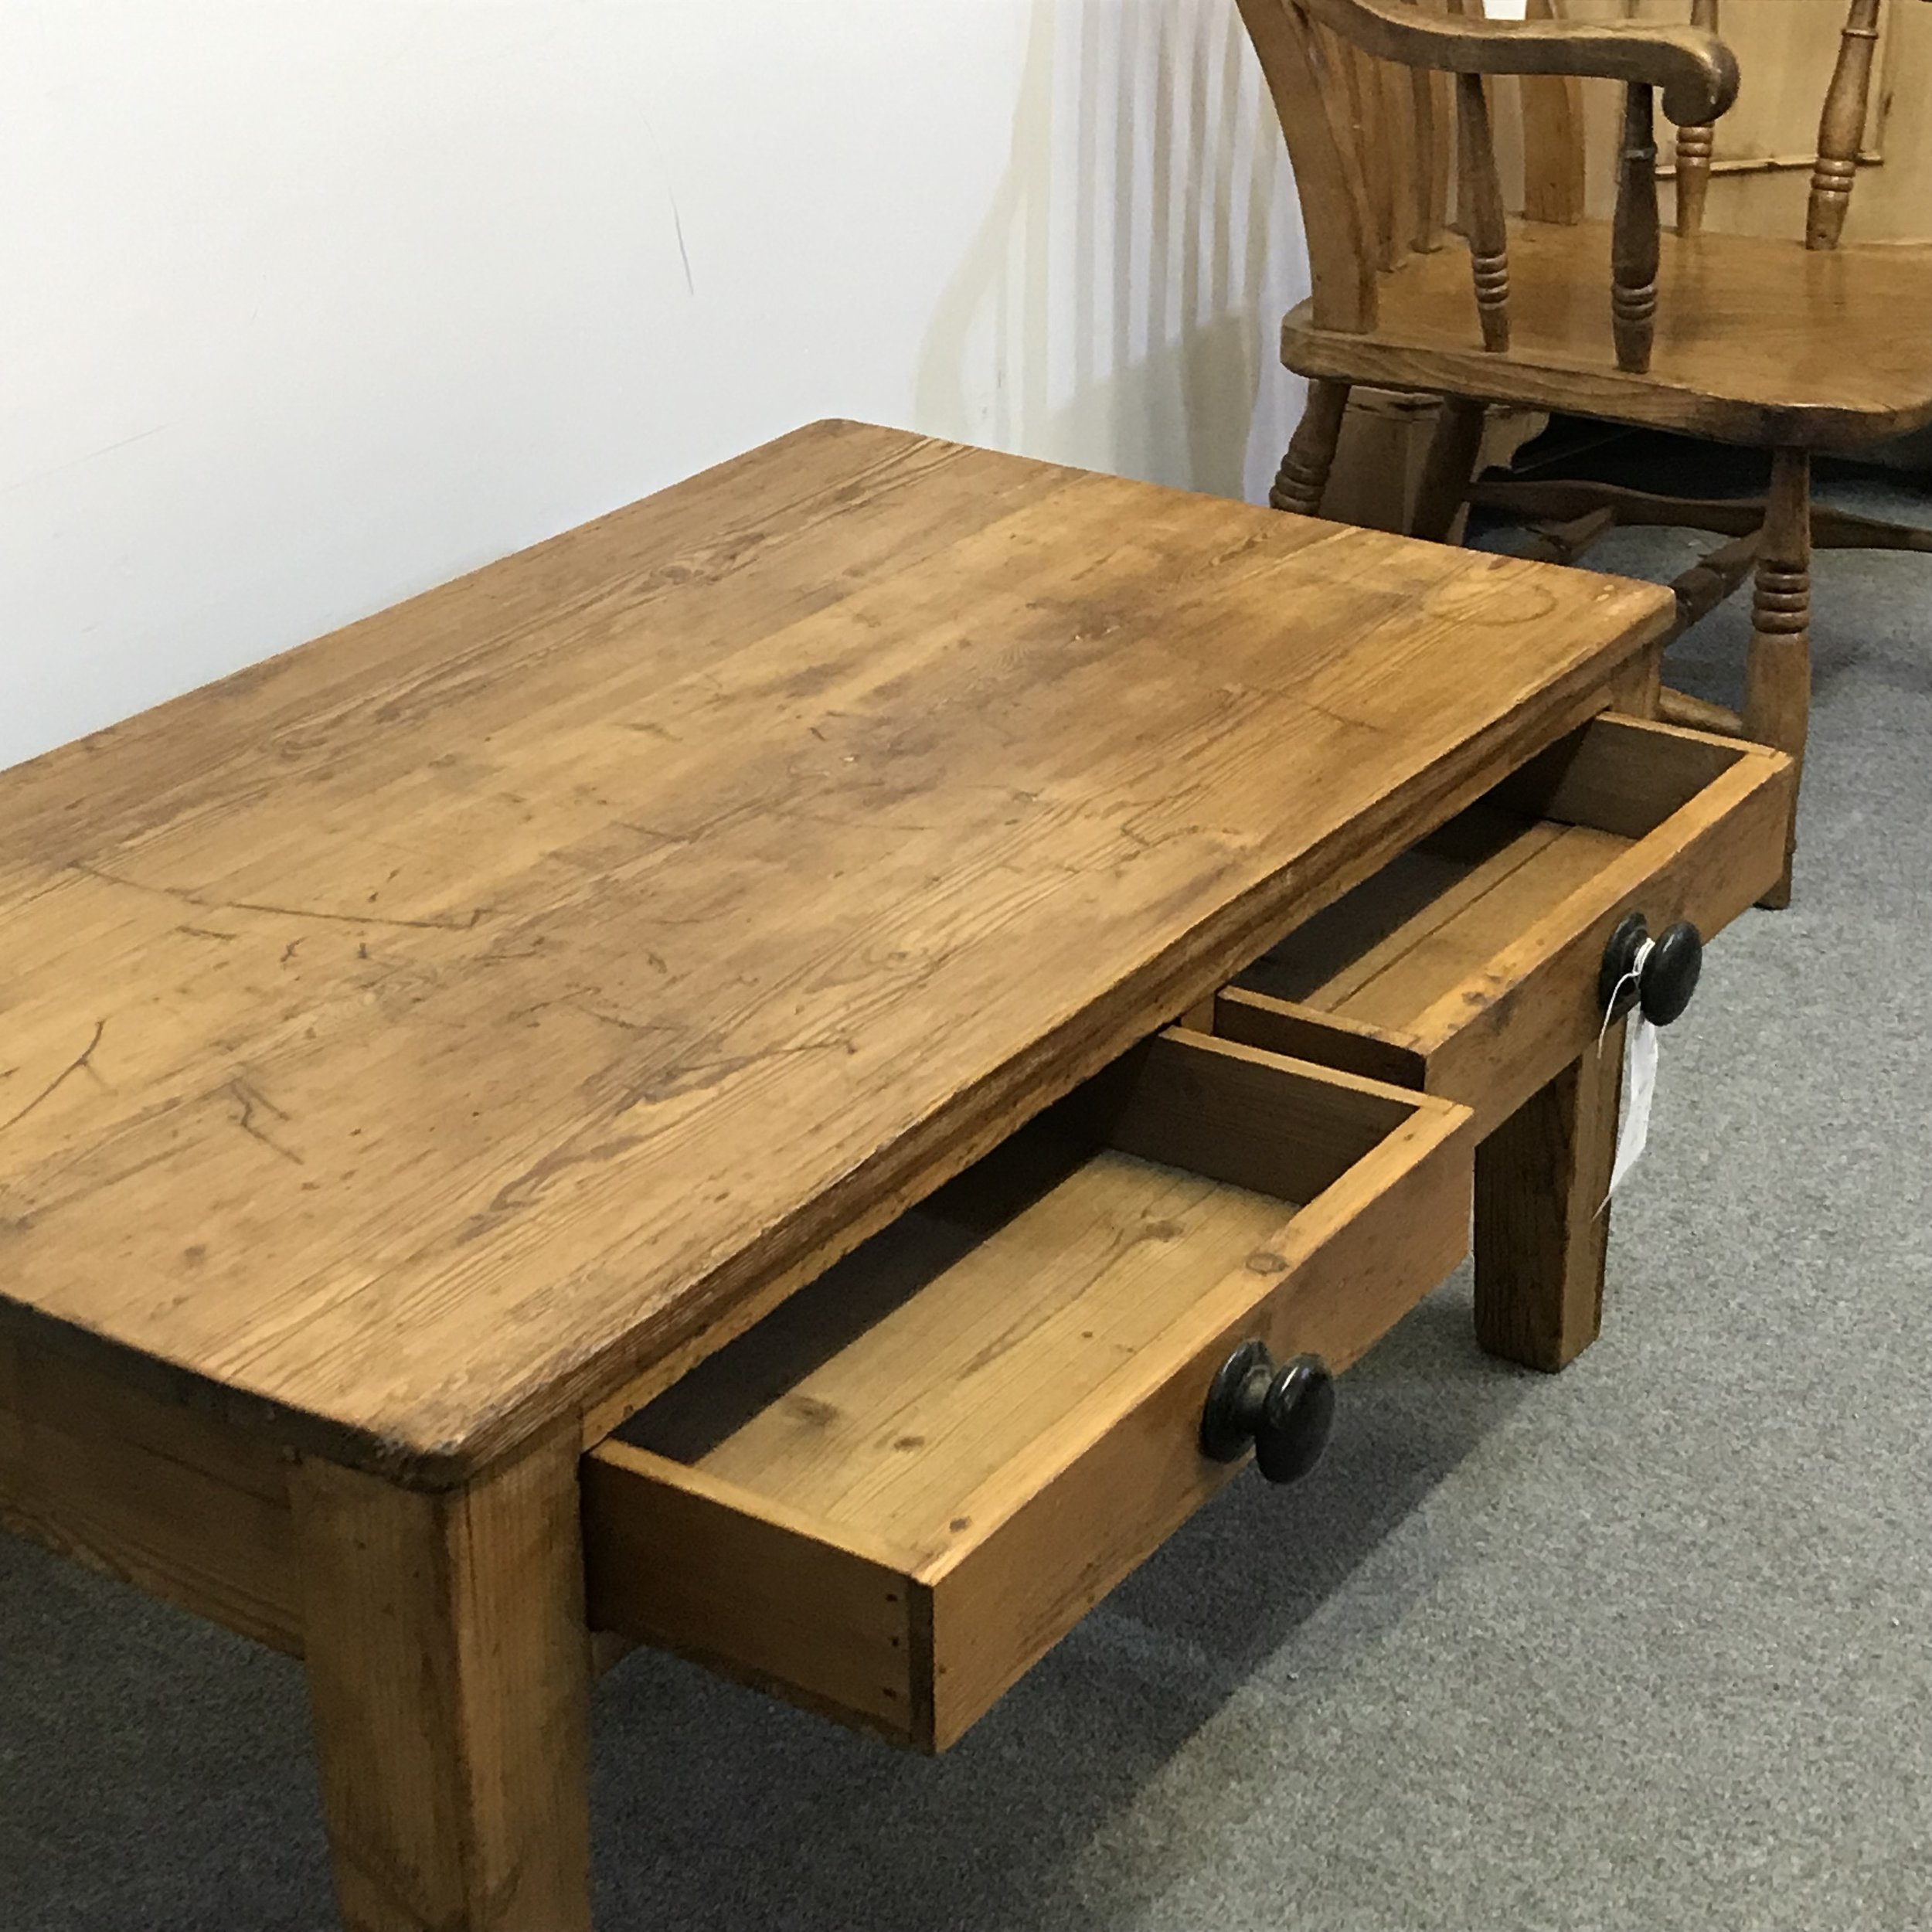 Pine coffee table with 2 drawers